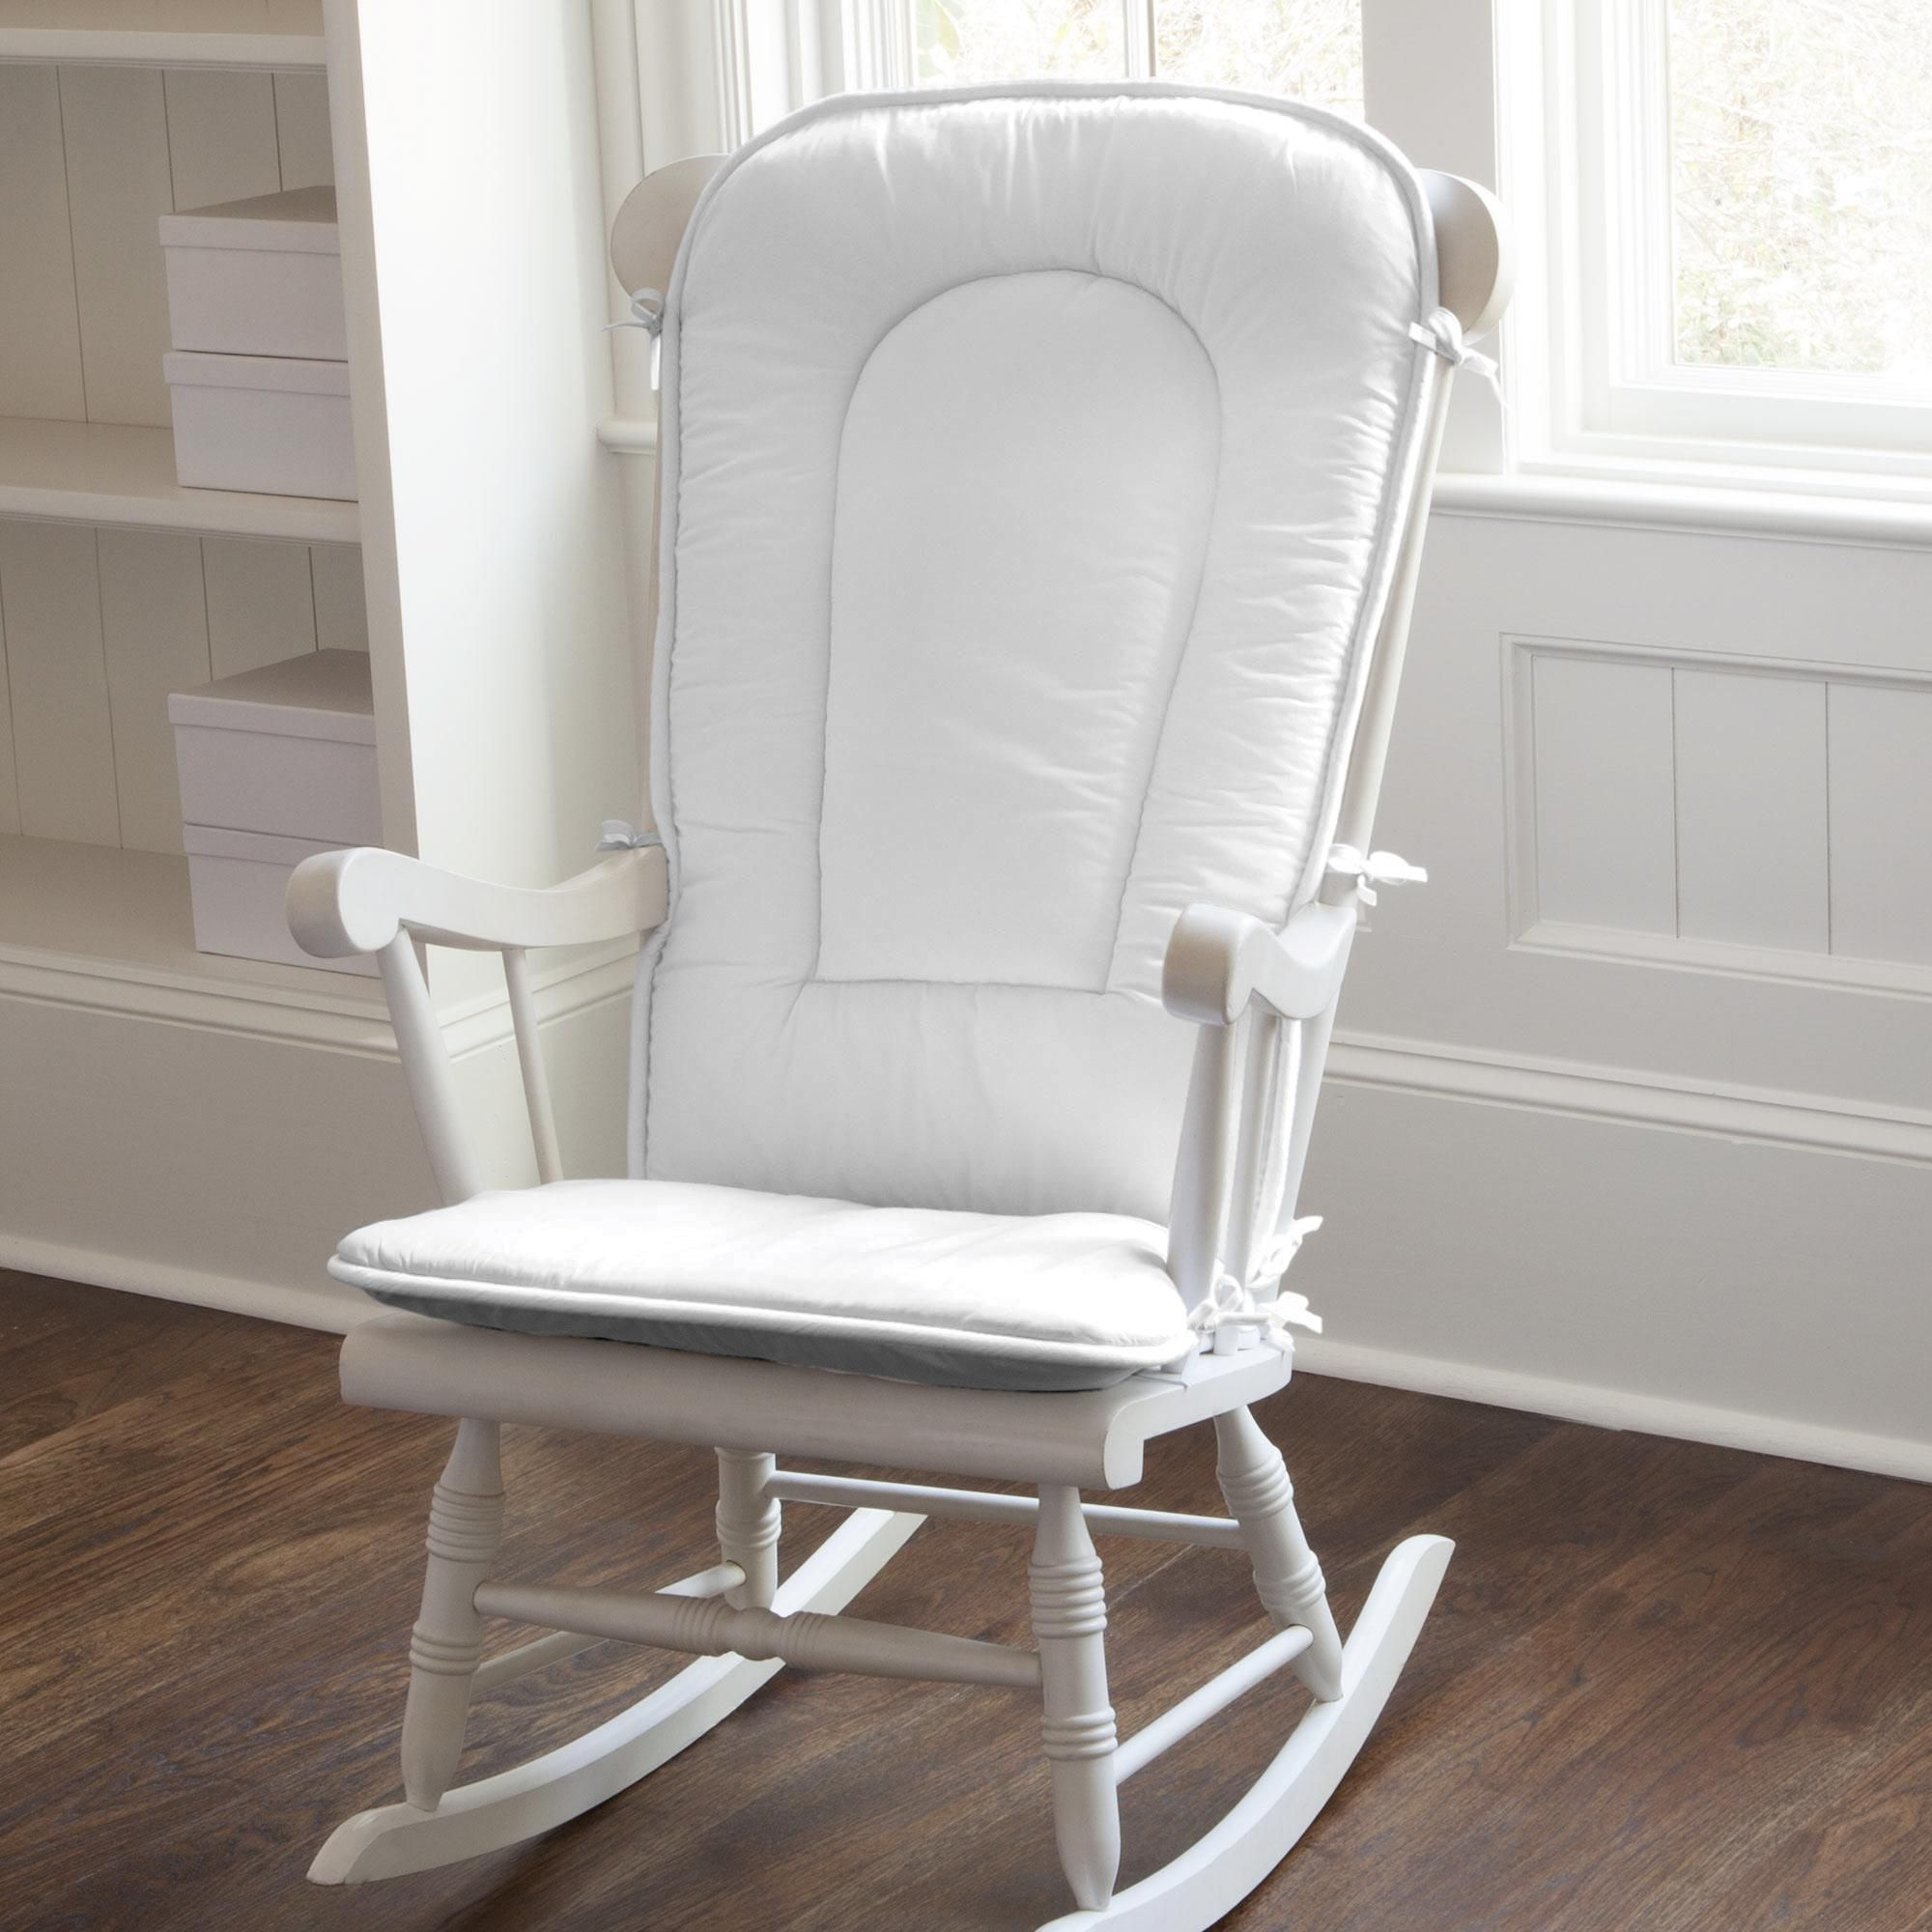 Solid White Rocking Chair Pad